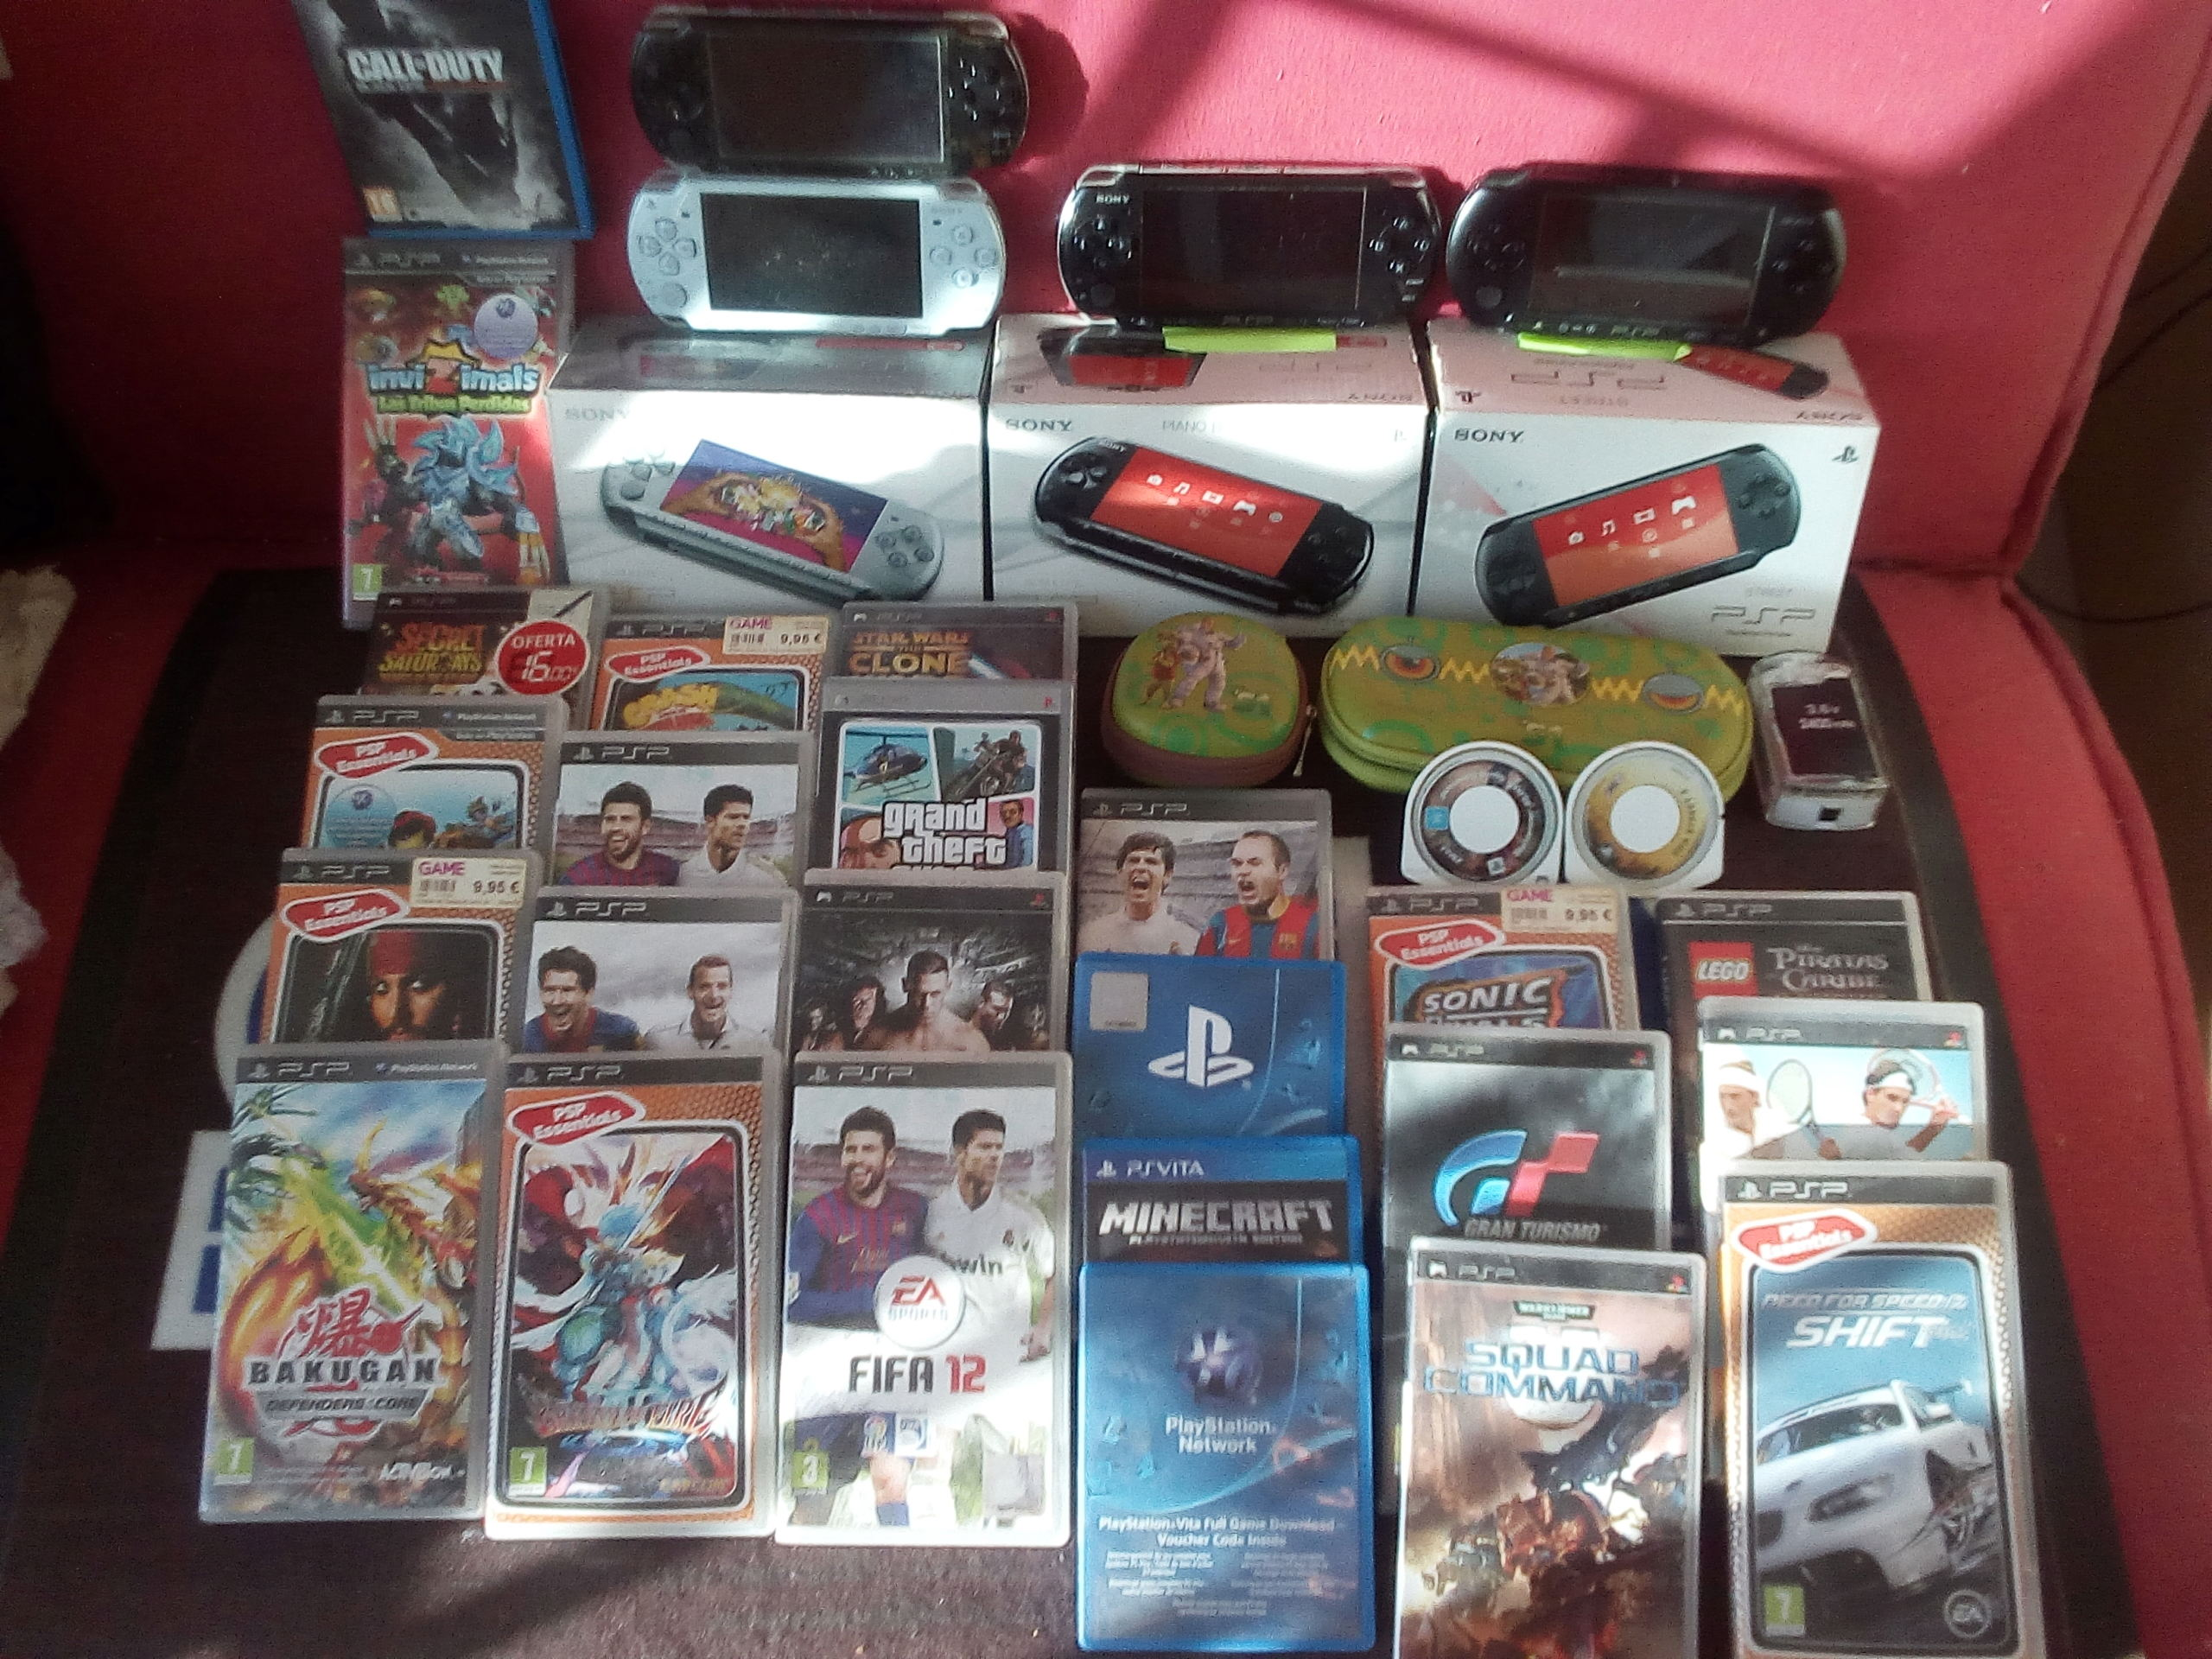 [VDS] Trucs jap, PSP, GG, PS3, SFC, Mark III, NEC, Goodies Sega jap etc Lot_ps10